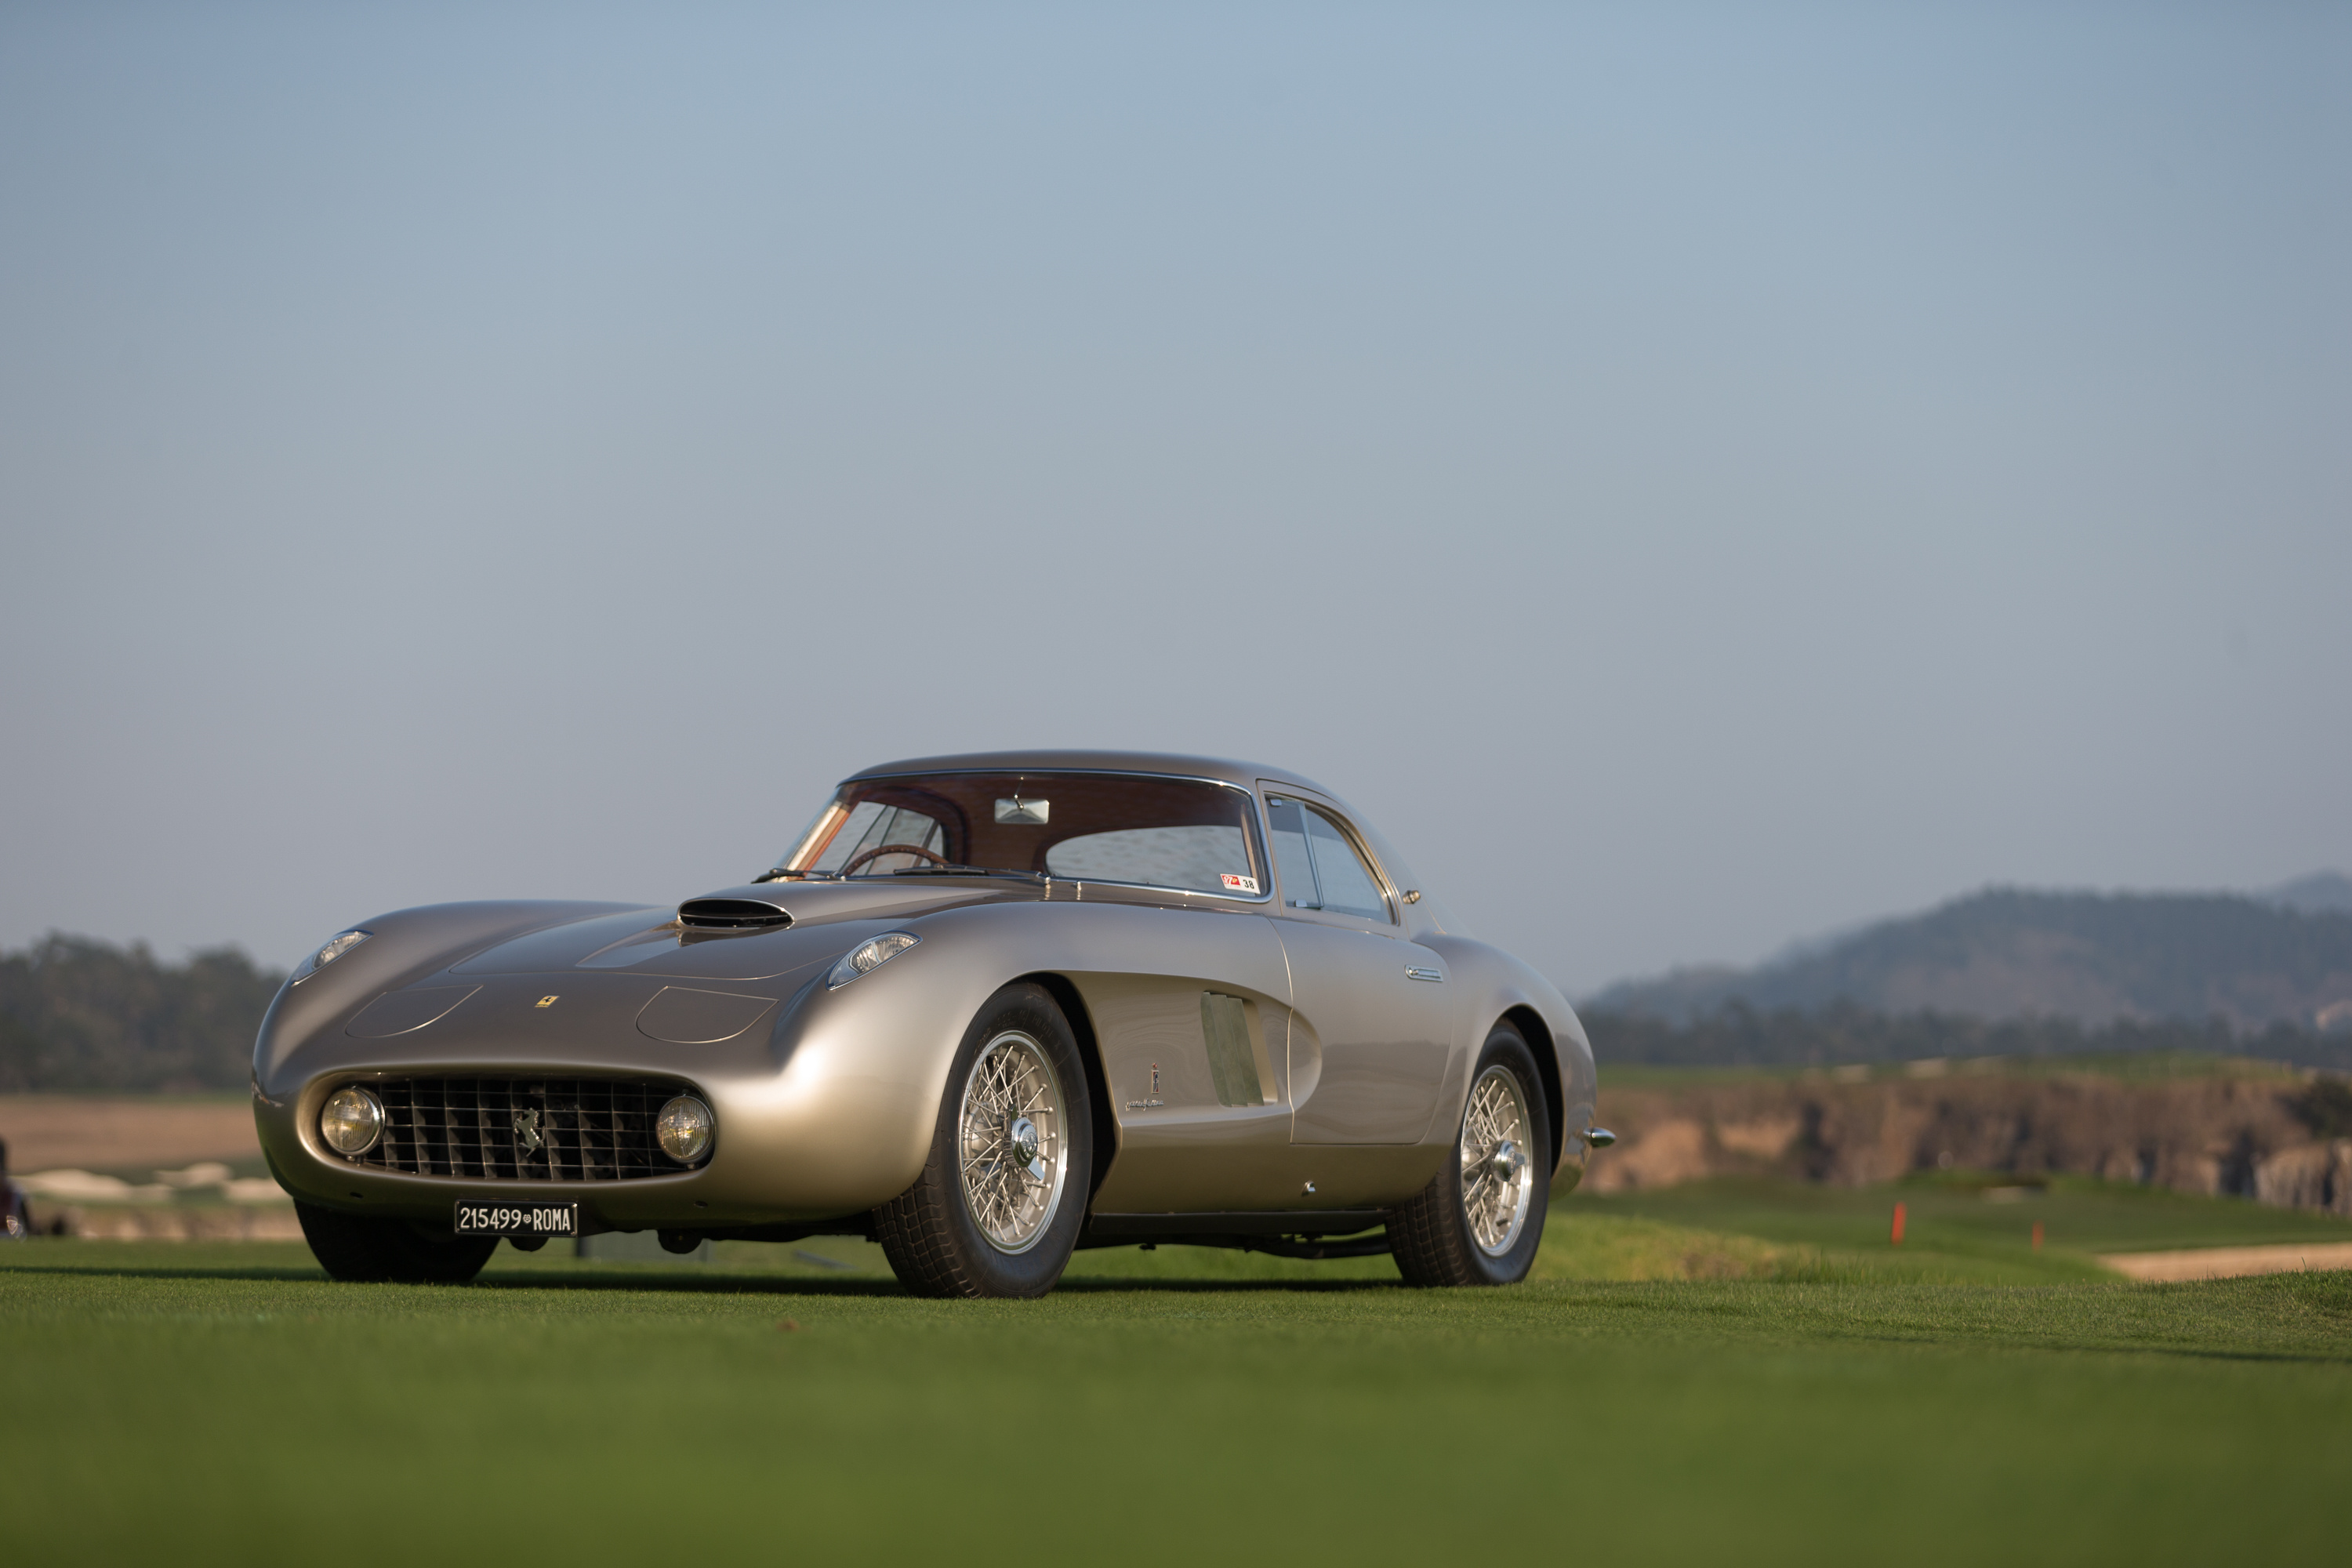 074-Ferrari-375-MM-PF-Berlinetta